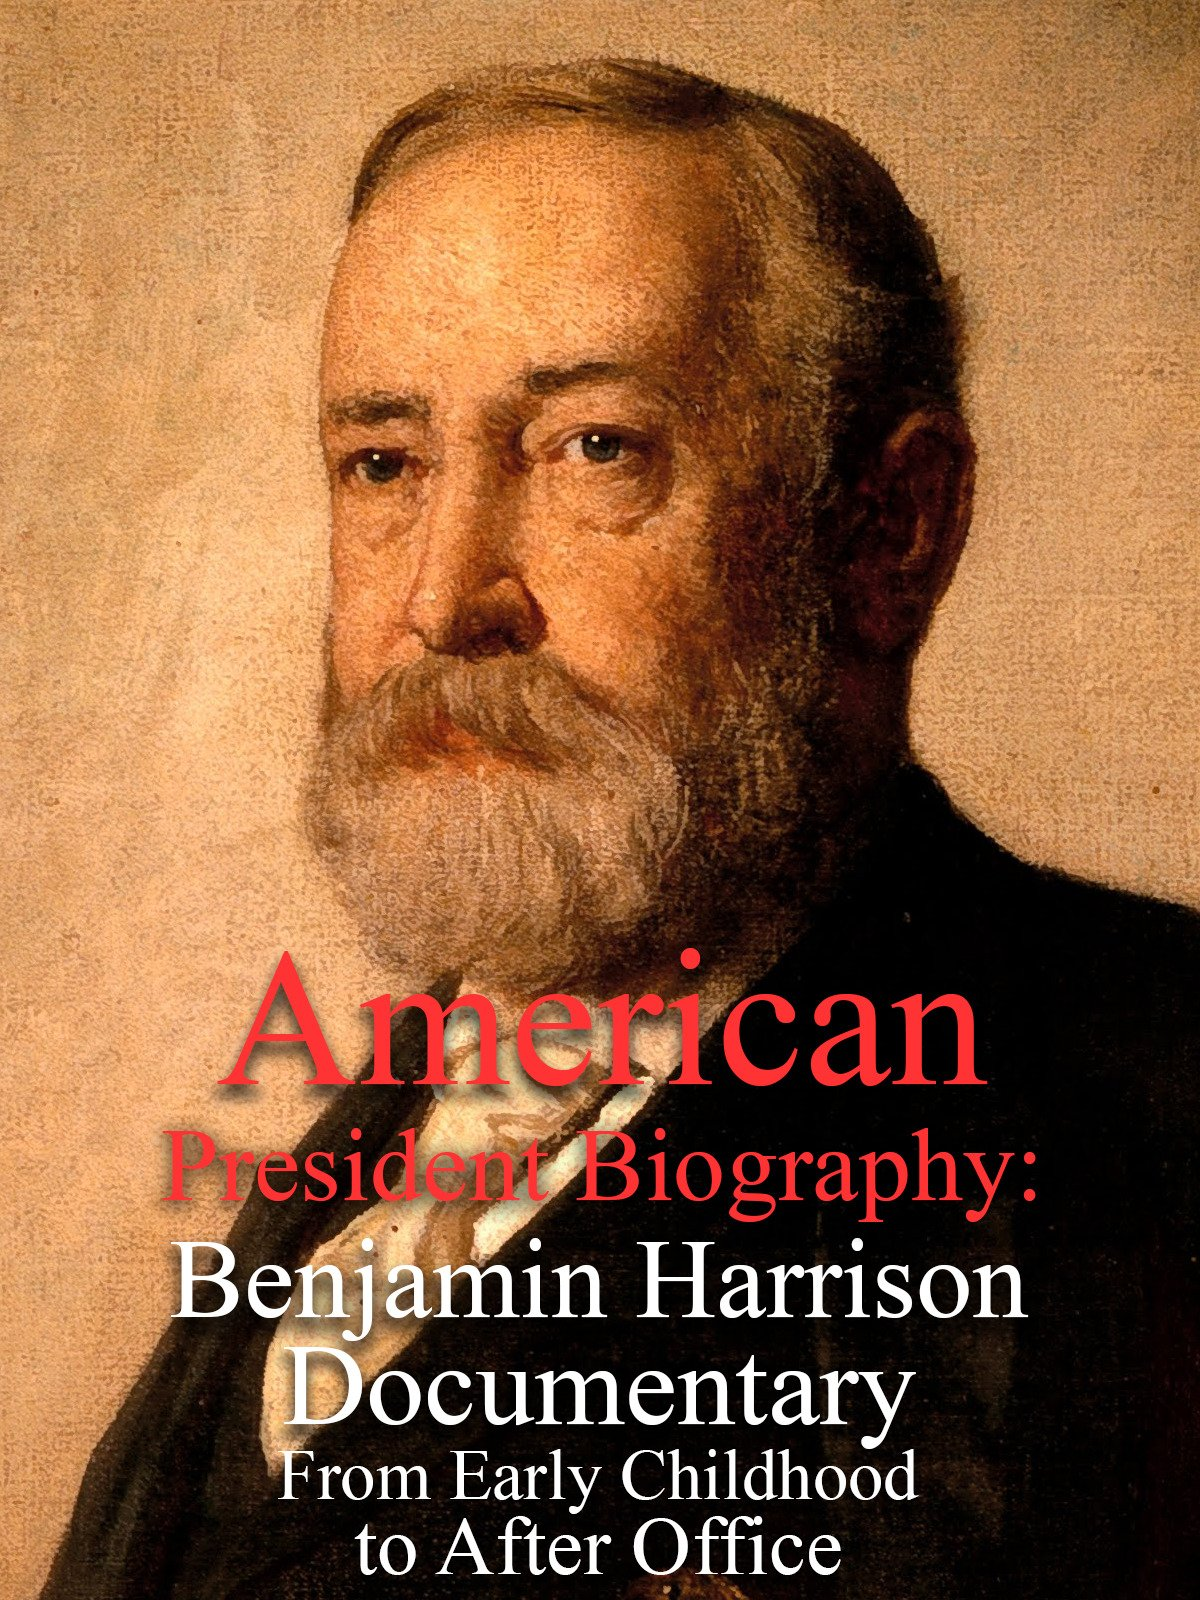 American President Biography: Benjamin Harrison Documentary From Early Childhood to After Office